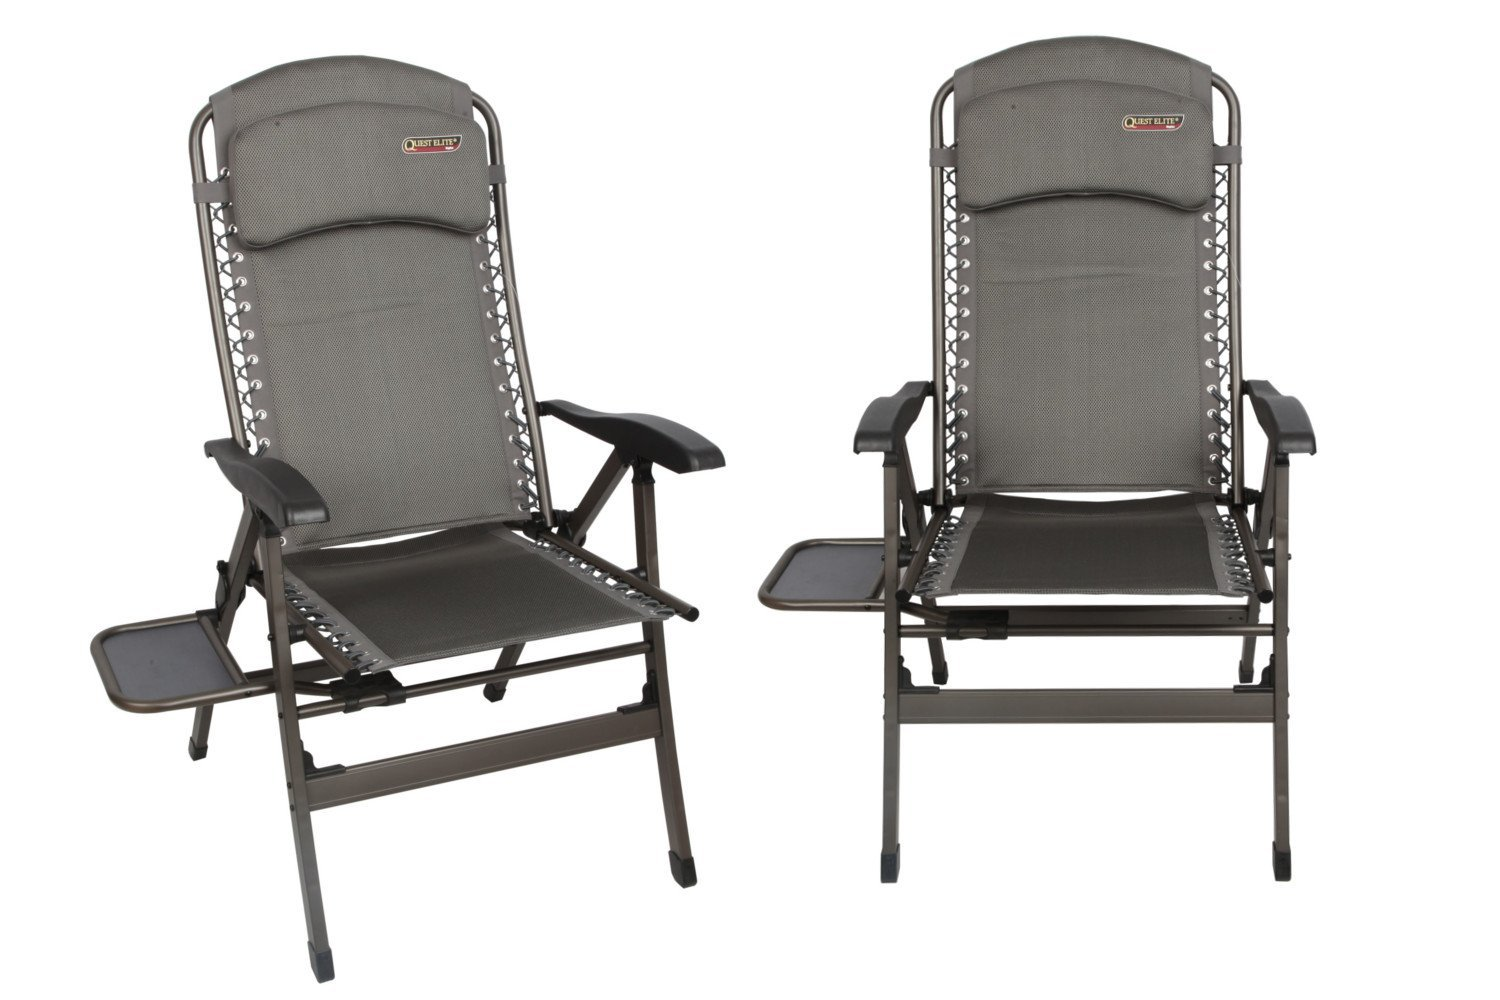 Capital Outdoors Hi Our Top Recliners Loungers And More Milled